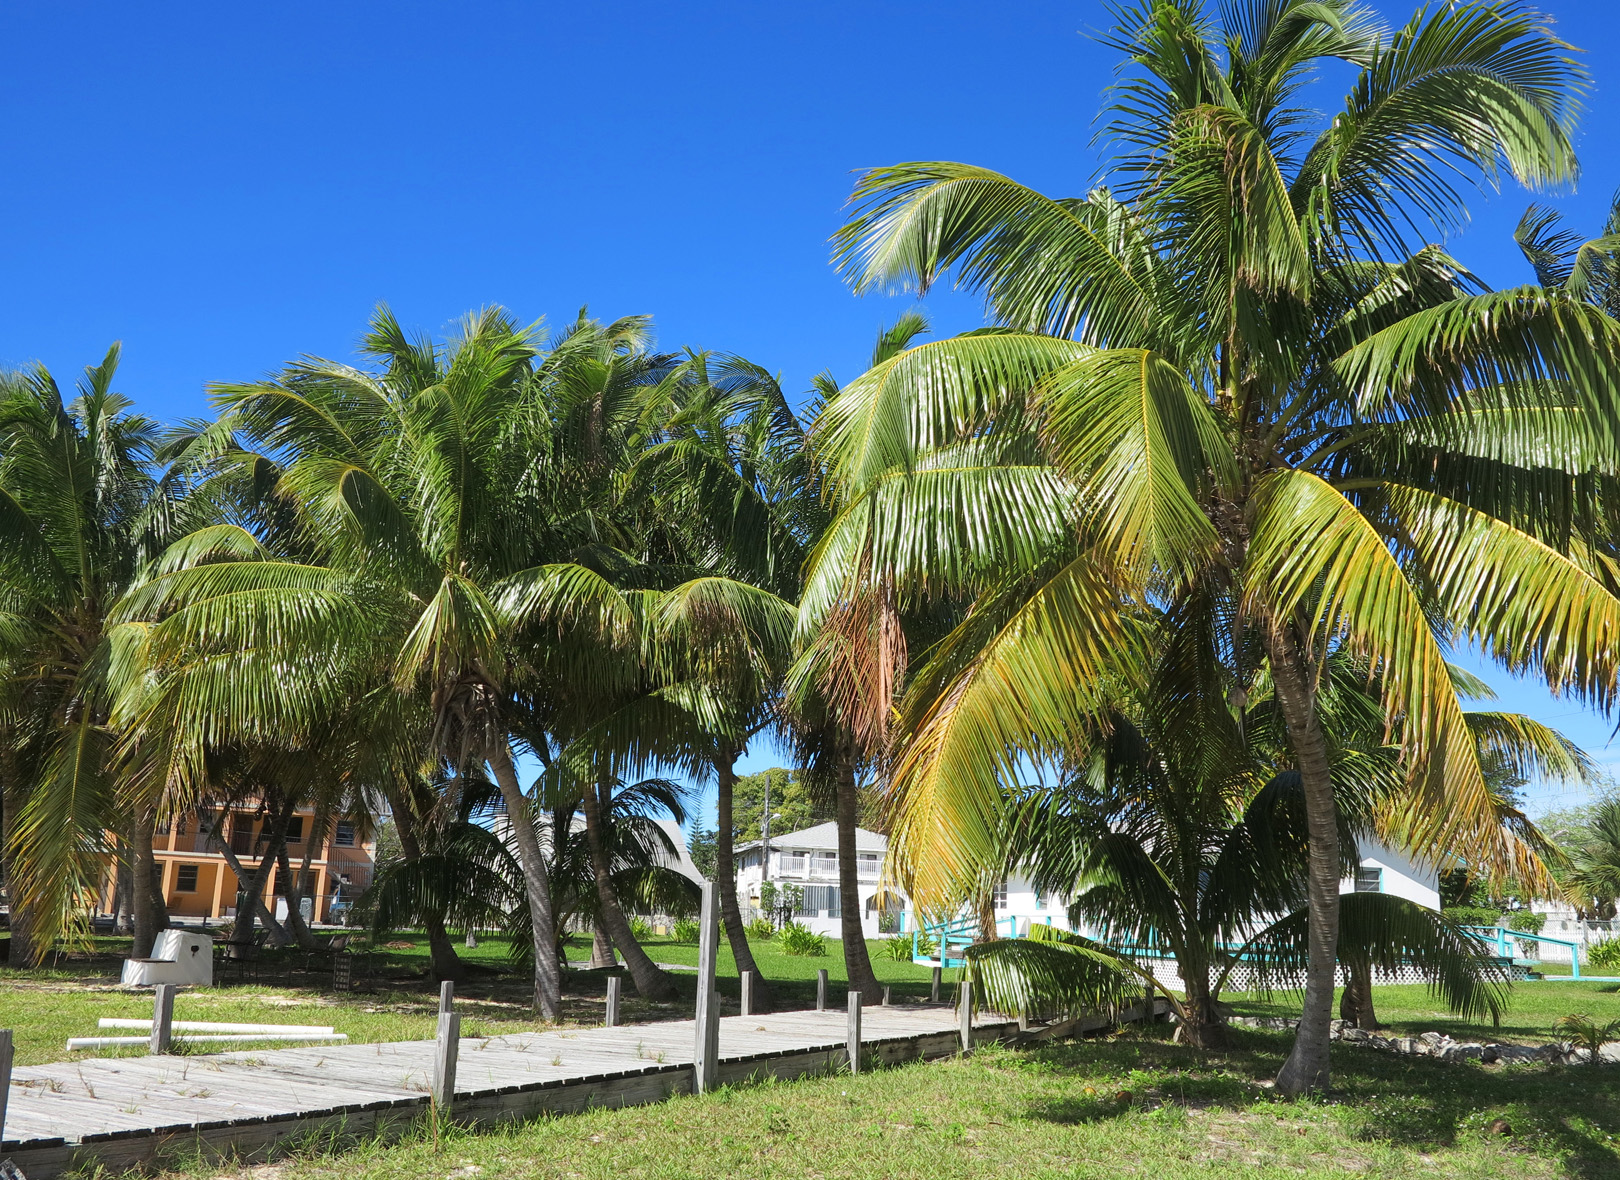 South Beach Palms - Green Turtle Cay, Abaco, Bahamas.